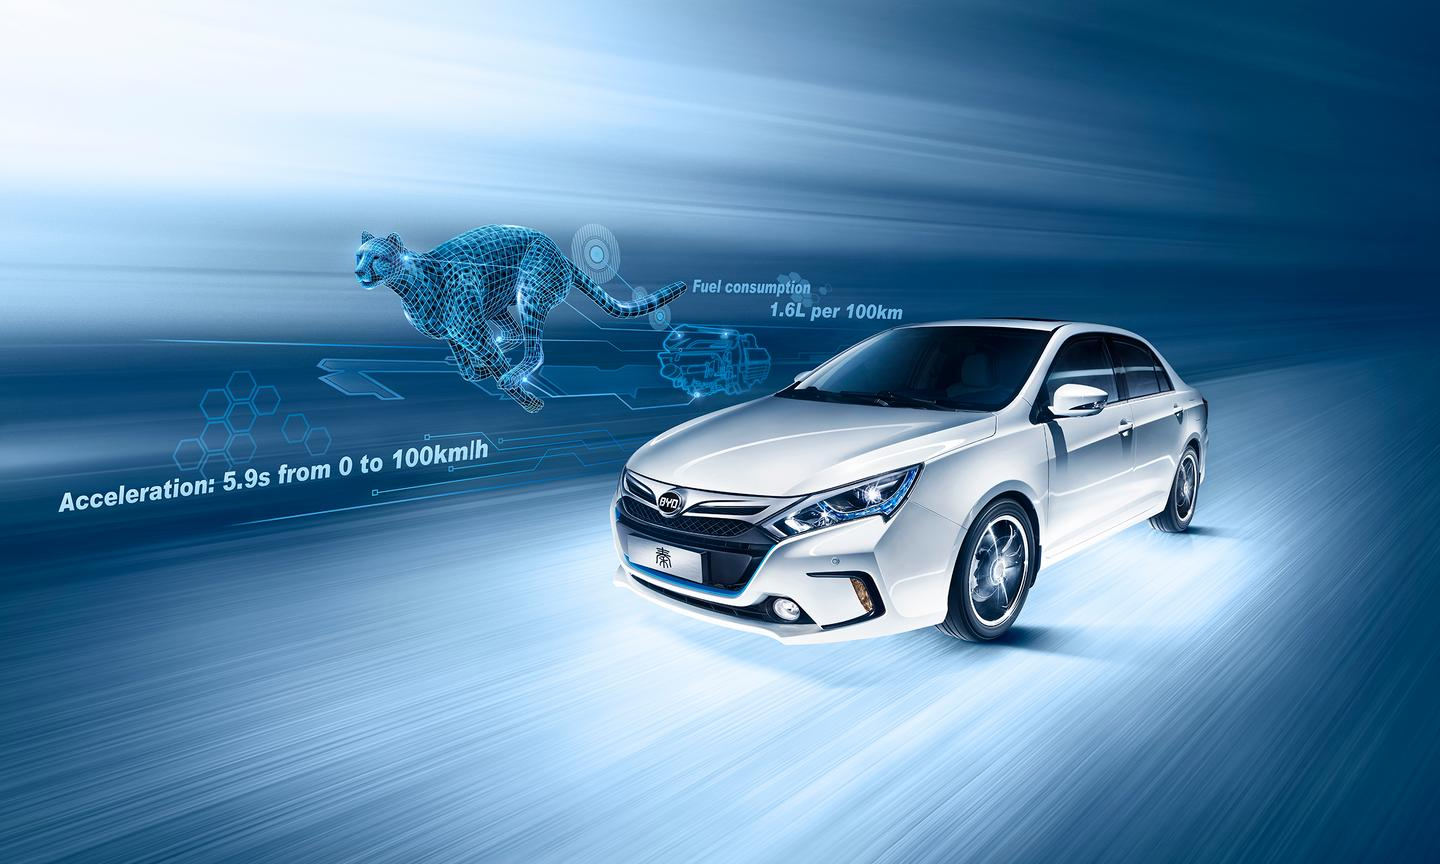 The online launch of the Qin saw all one hundred cars on offer sold in two seconds